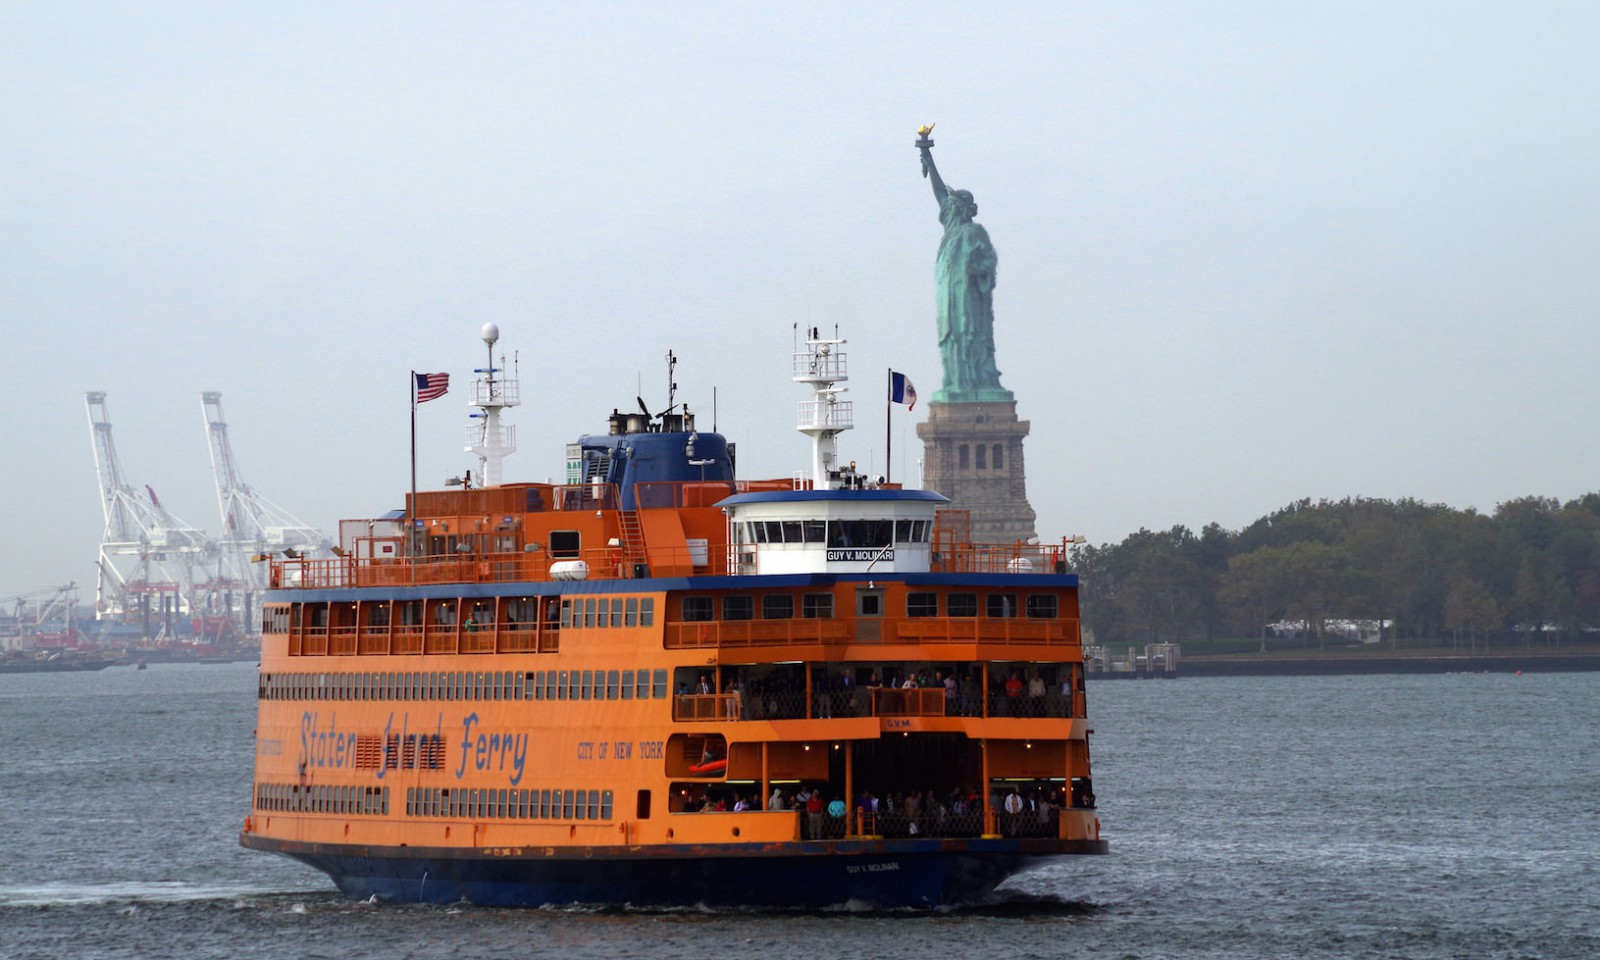 5 Ways To Explore NYC On A Budget